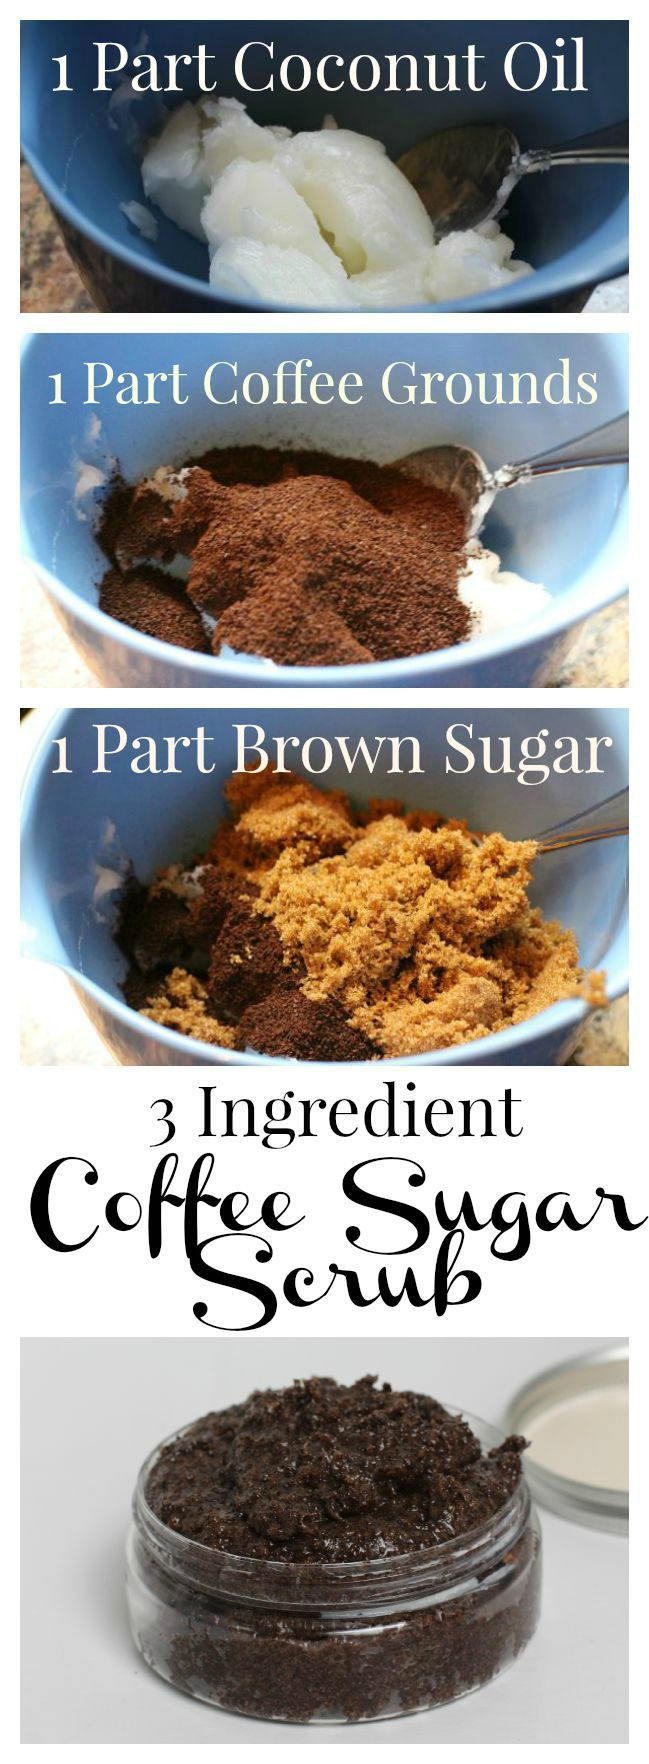 See why I think it's important to #ApplyBeforeYouDry with Jergens Wet Skin Moisturizer from @Target and find out how to make your own Coffee Sugar Scrub! AD